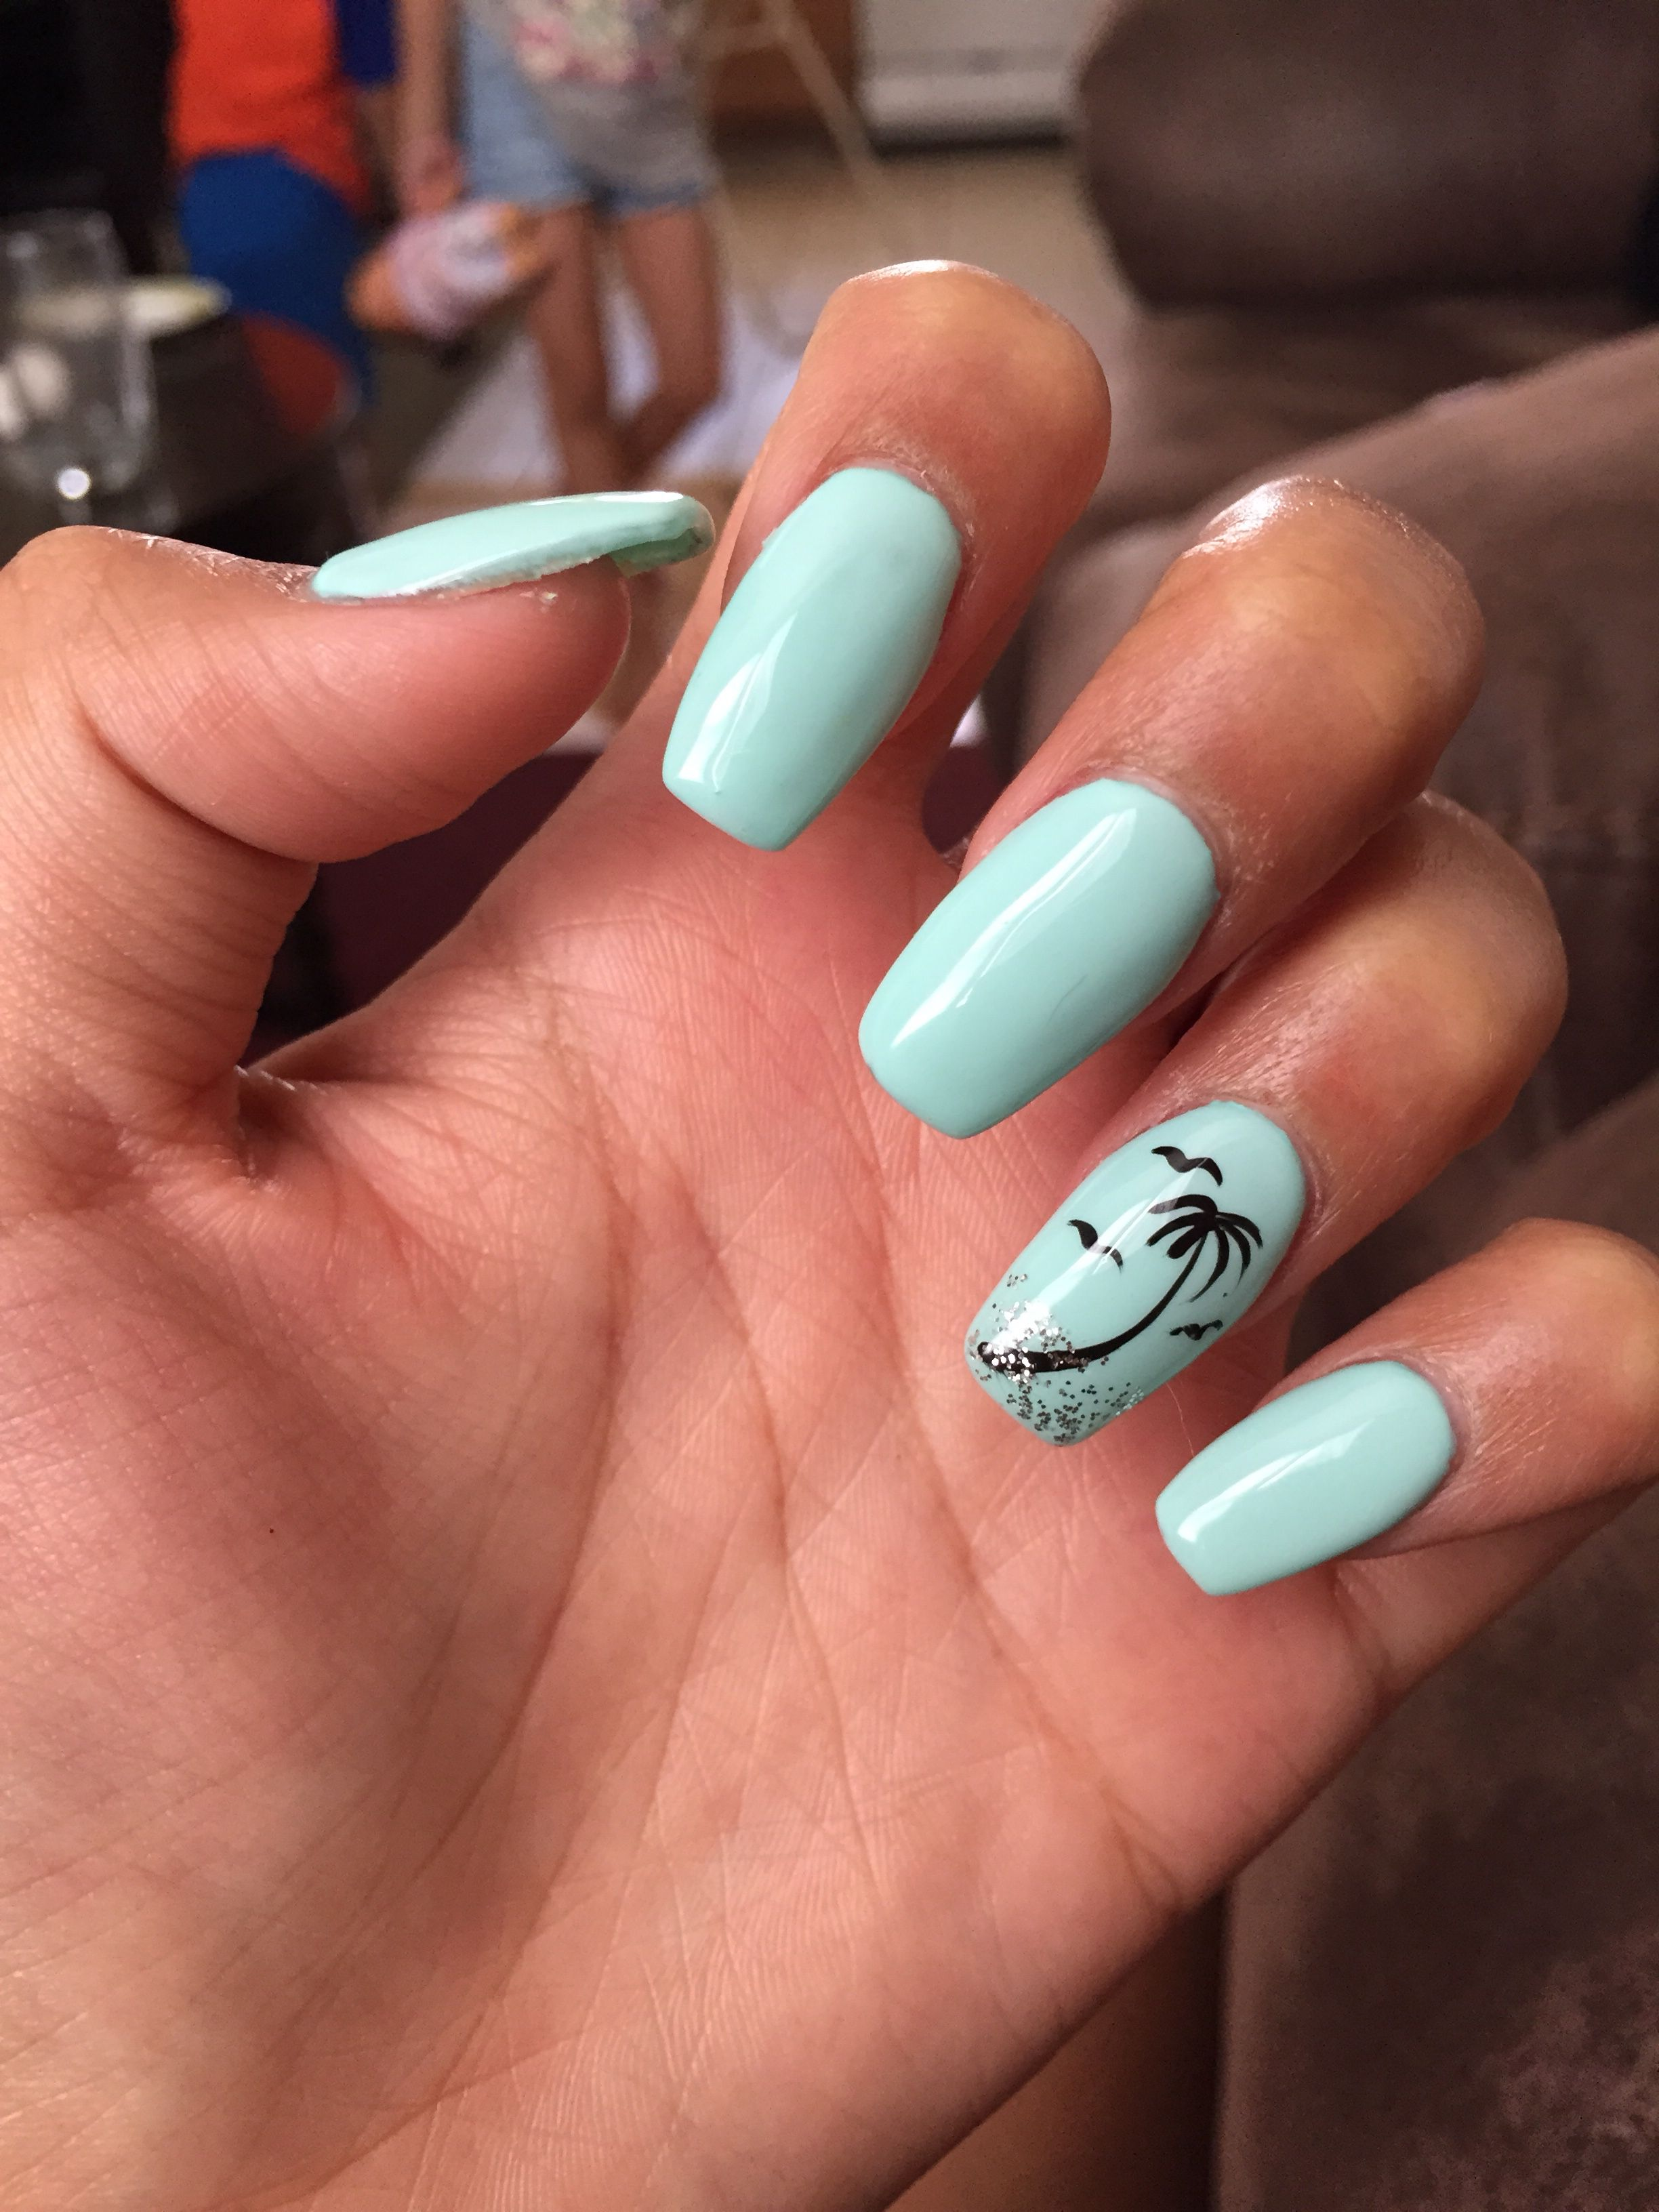 My Cute, Baby Blue, Coffin-shaped Nails With A Little